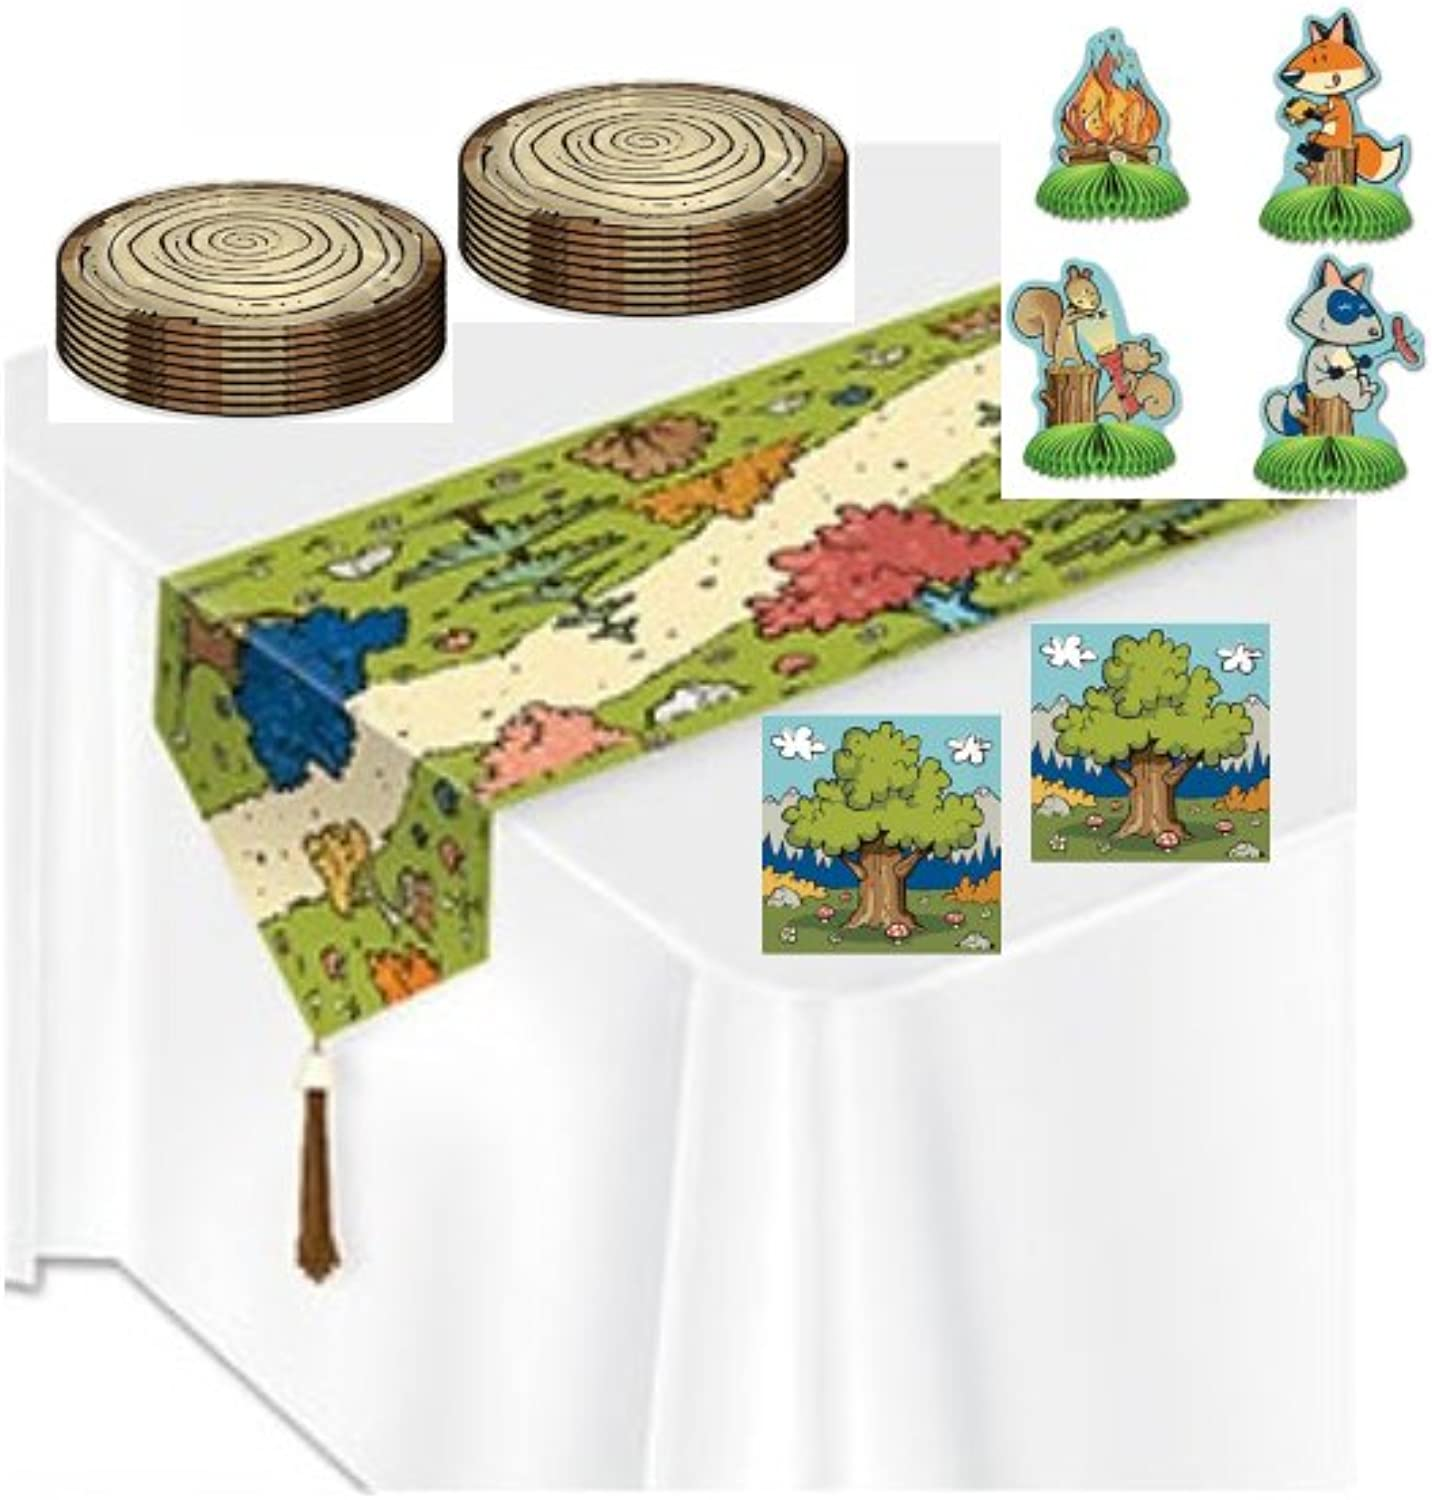 Enlightening Minds Woodland Friends Party Supplies - Centerpieces - Table Runner - Plates - Napkins